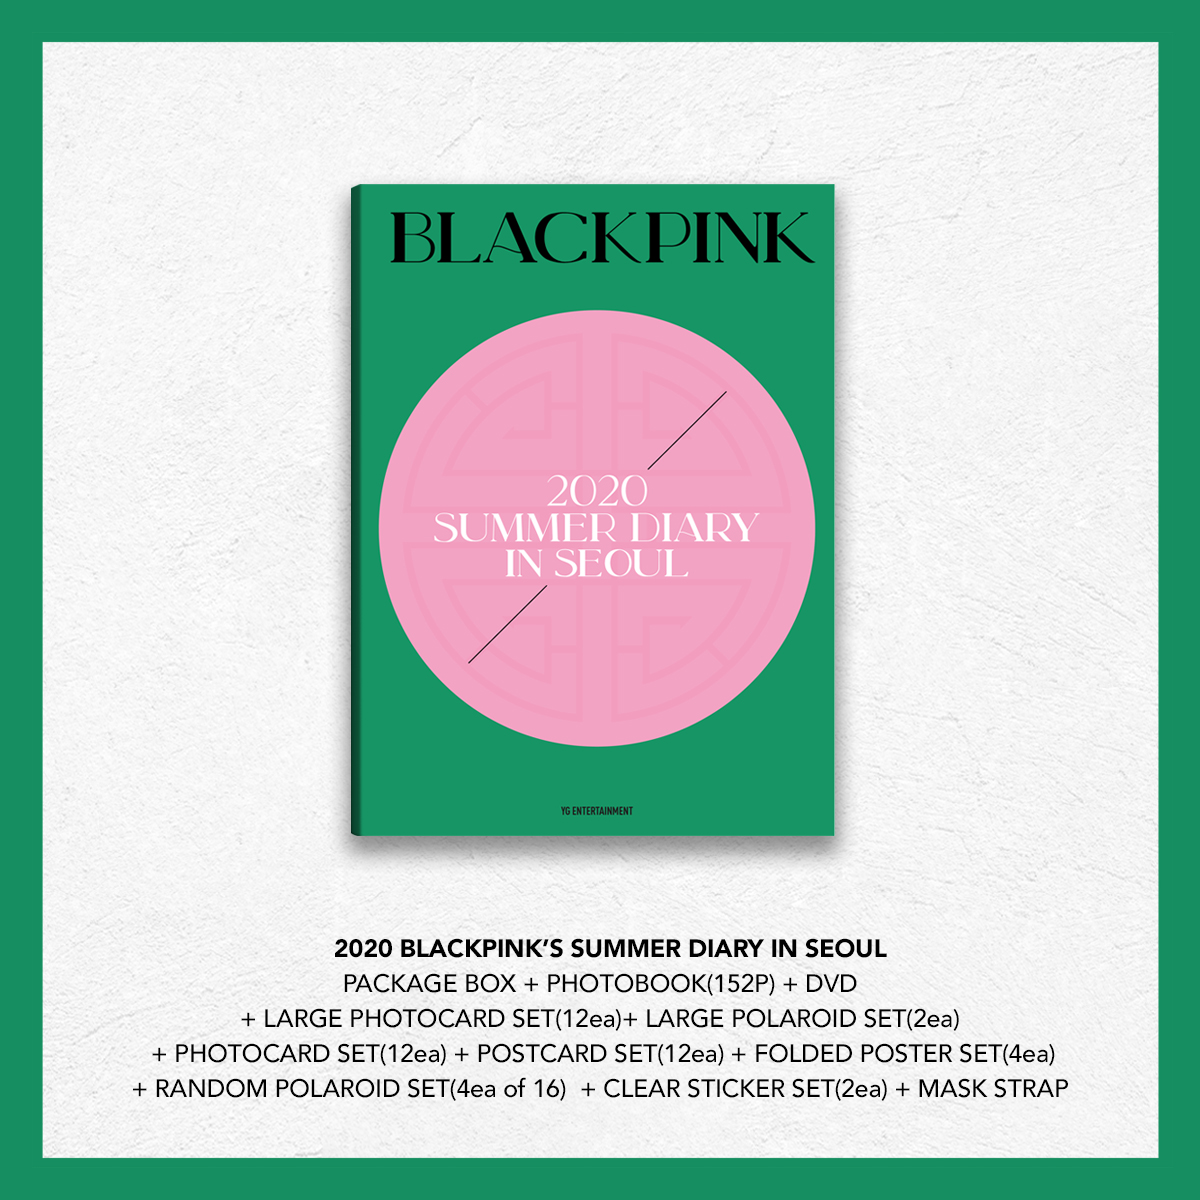 BLACKPINK Summer Diary in Seoul 2020